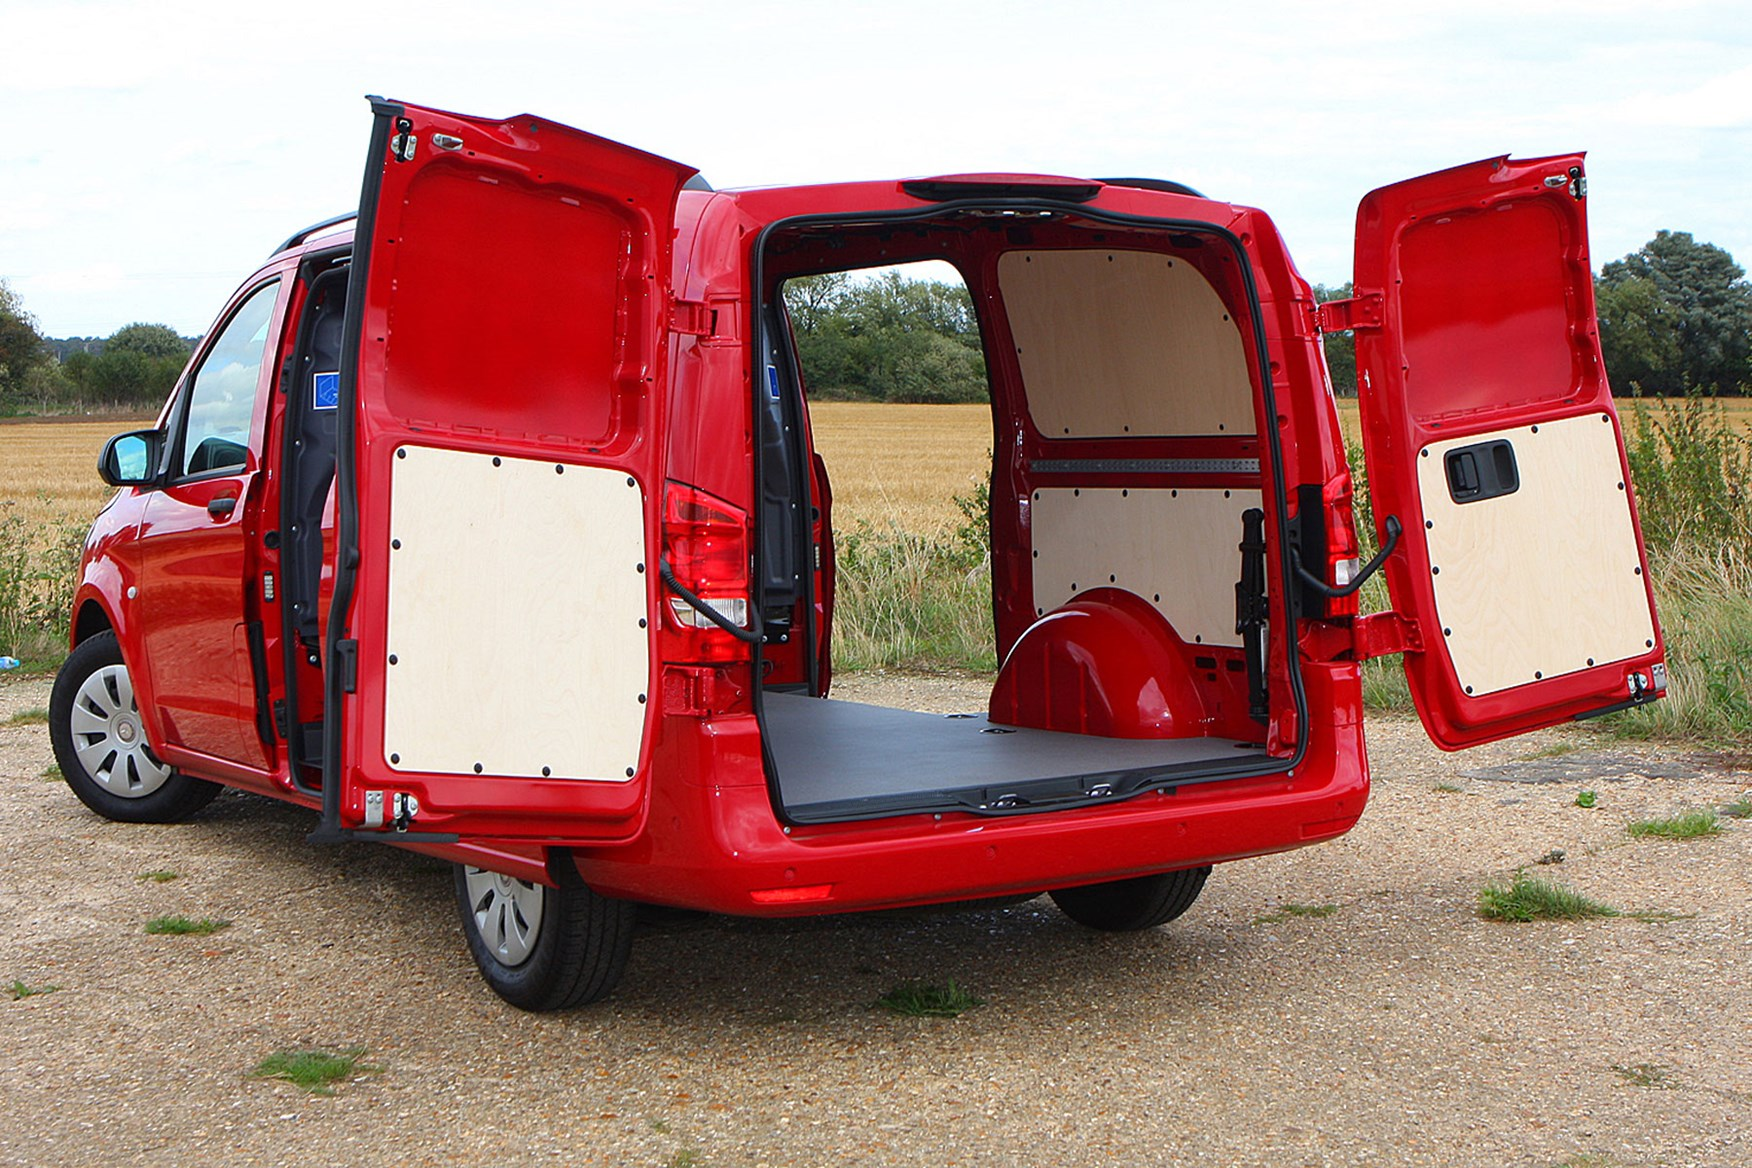 Mercedes-Benz Vito 111CDi Long review - load area, rear view, all doors open, red